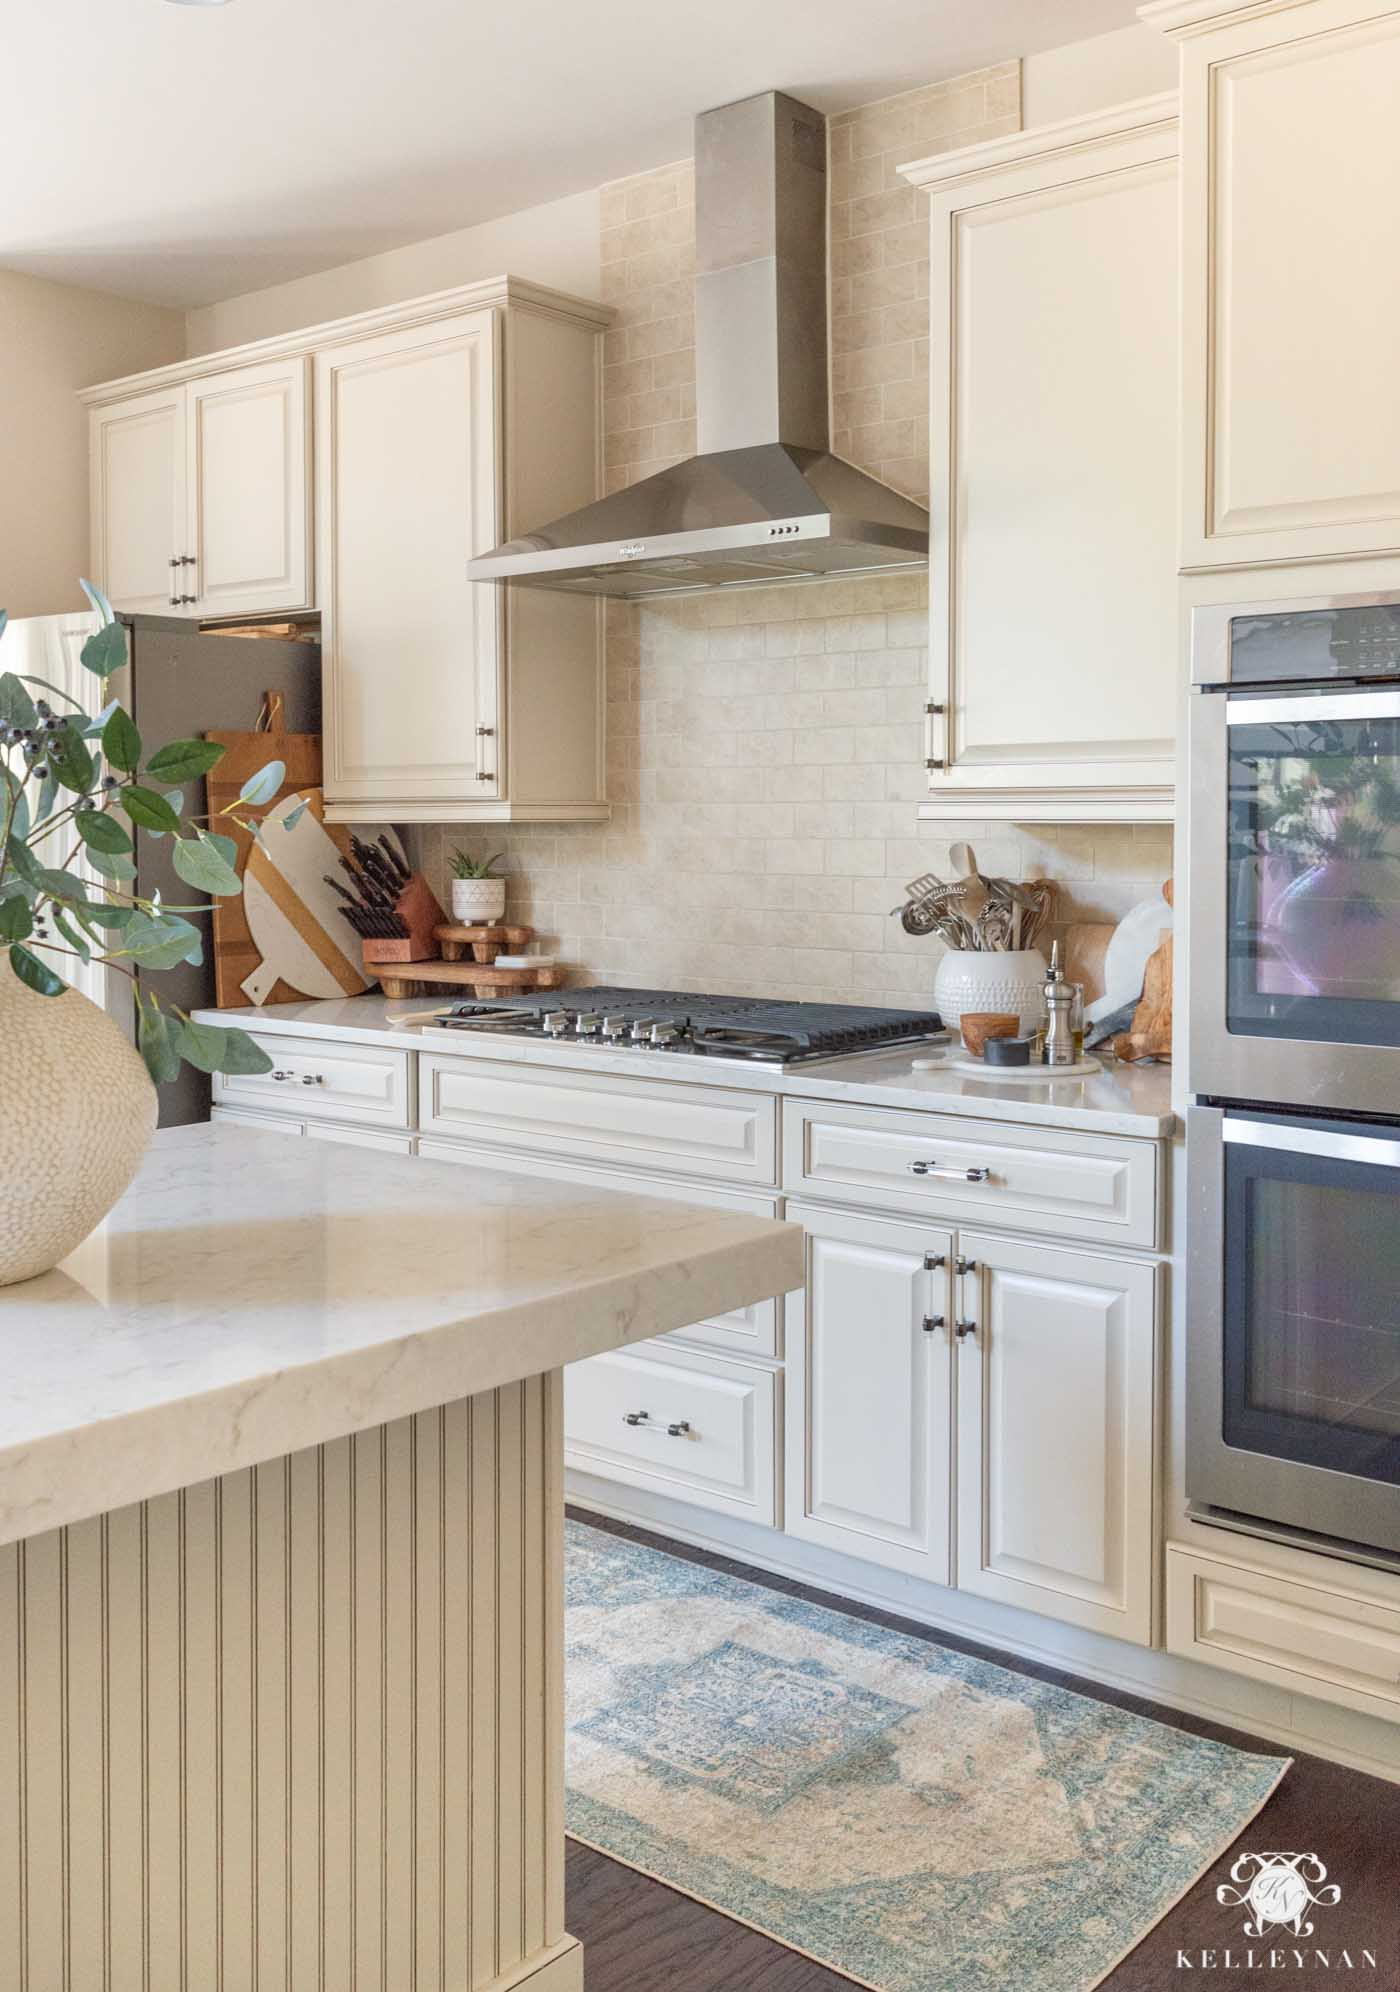 Pops of Blue in a Cream Kitchen - And Other Spring Decor